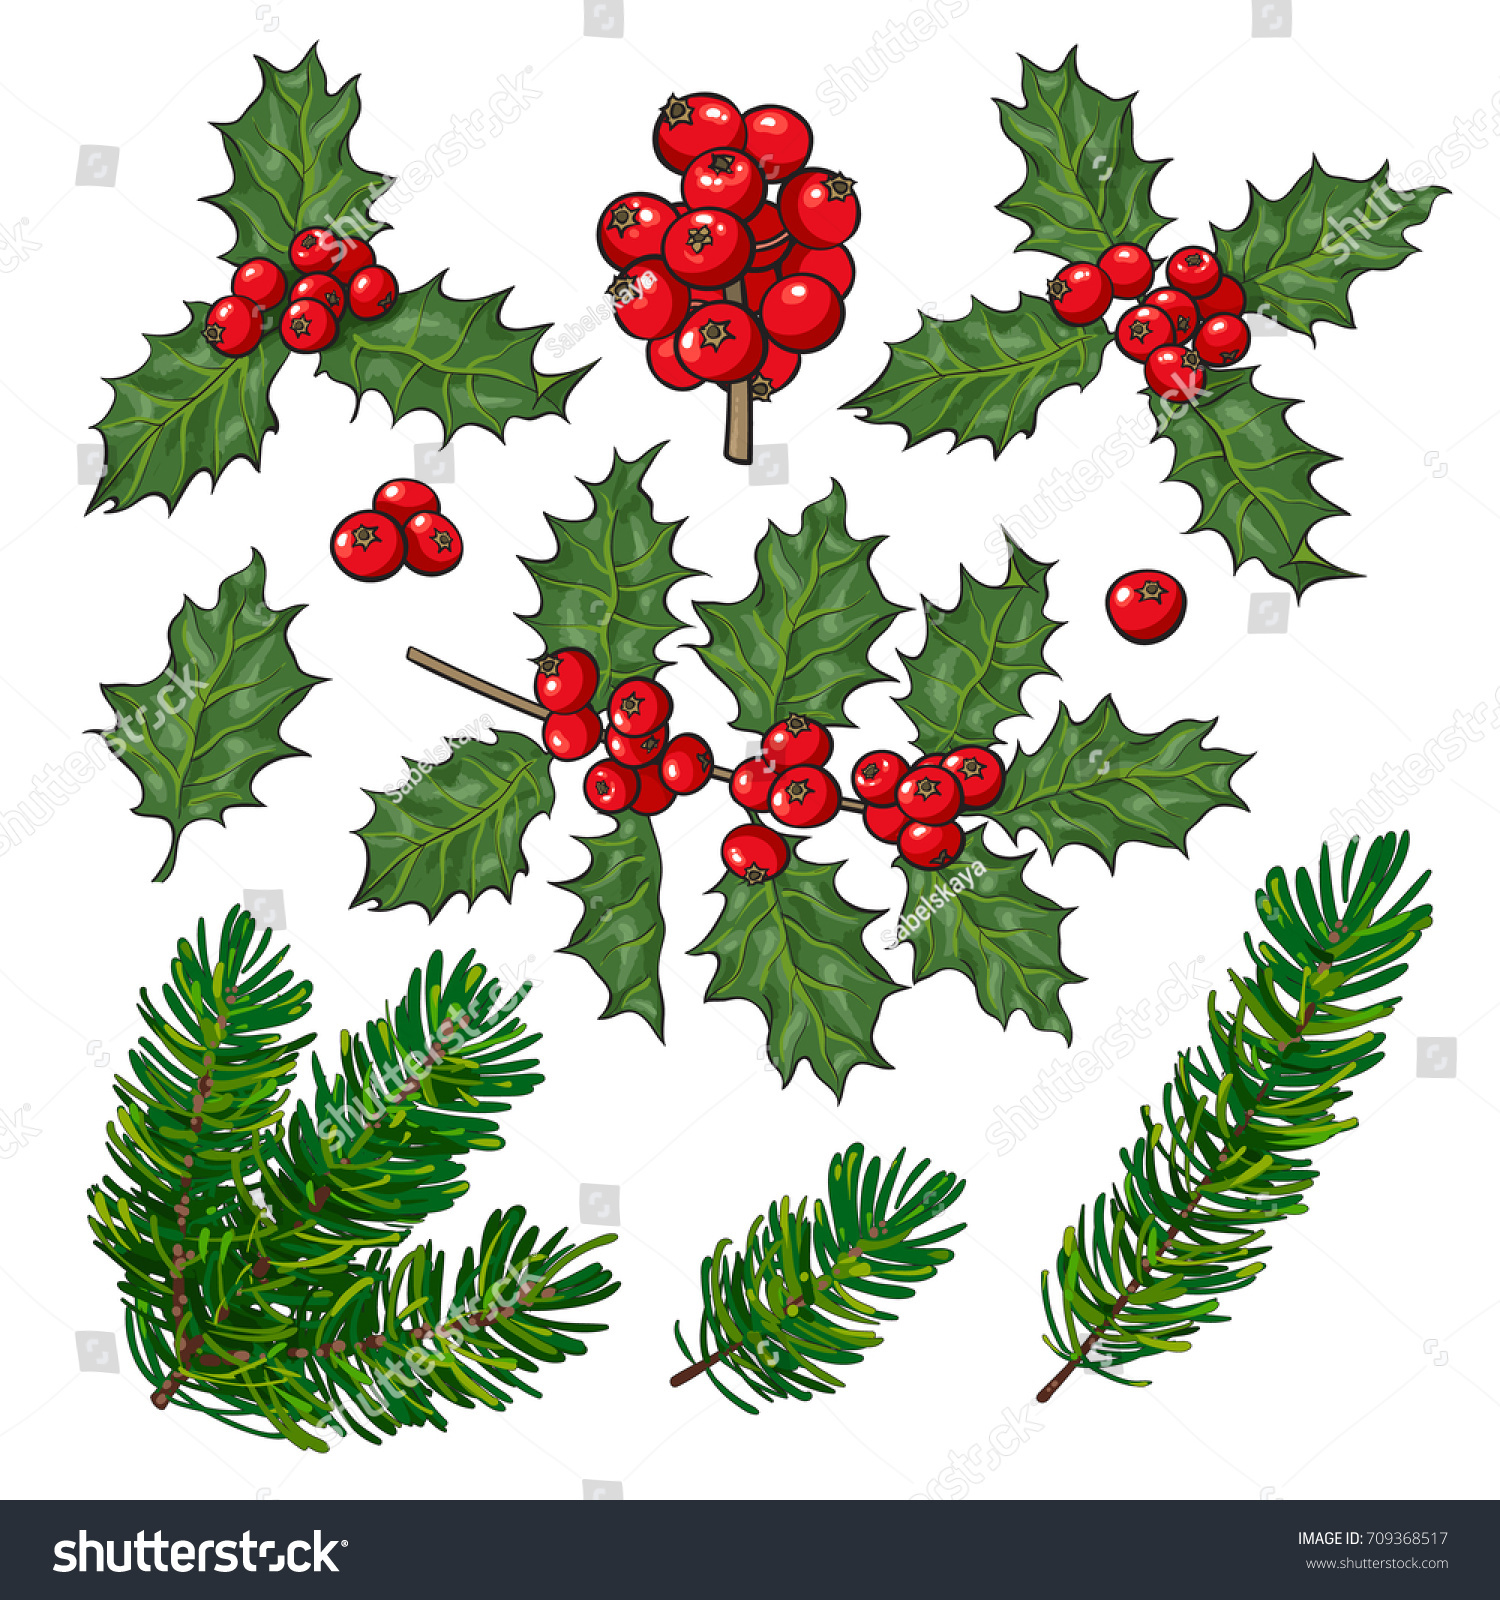 set of fir tree and mistletoe branches with leaves and berries christmas decoration elements